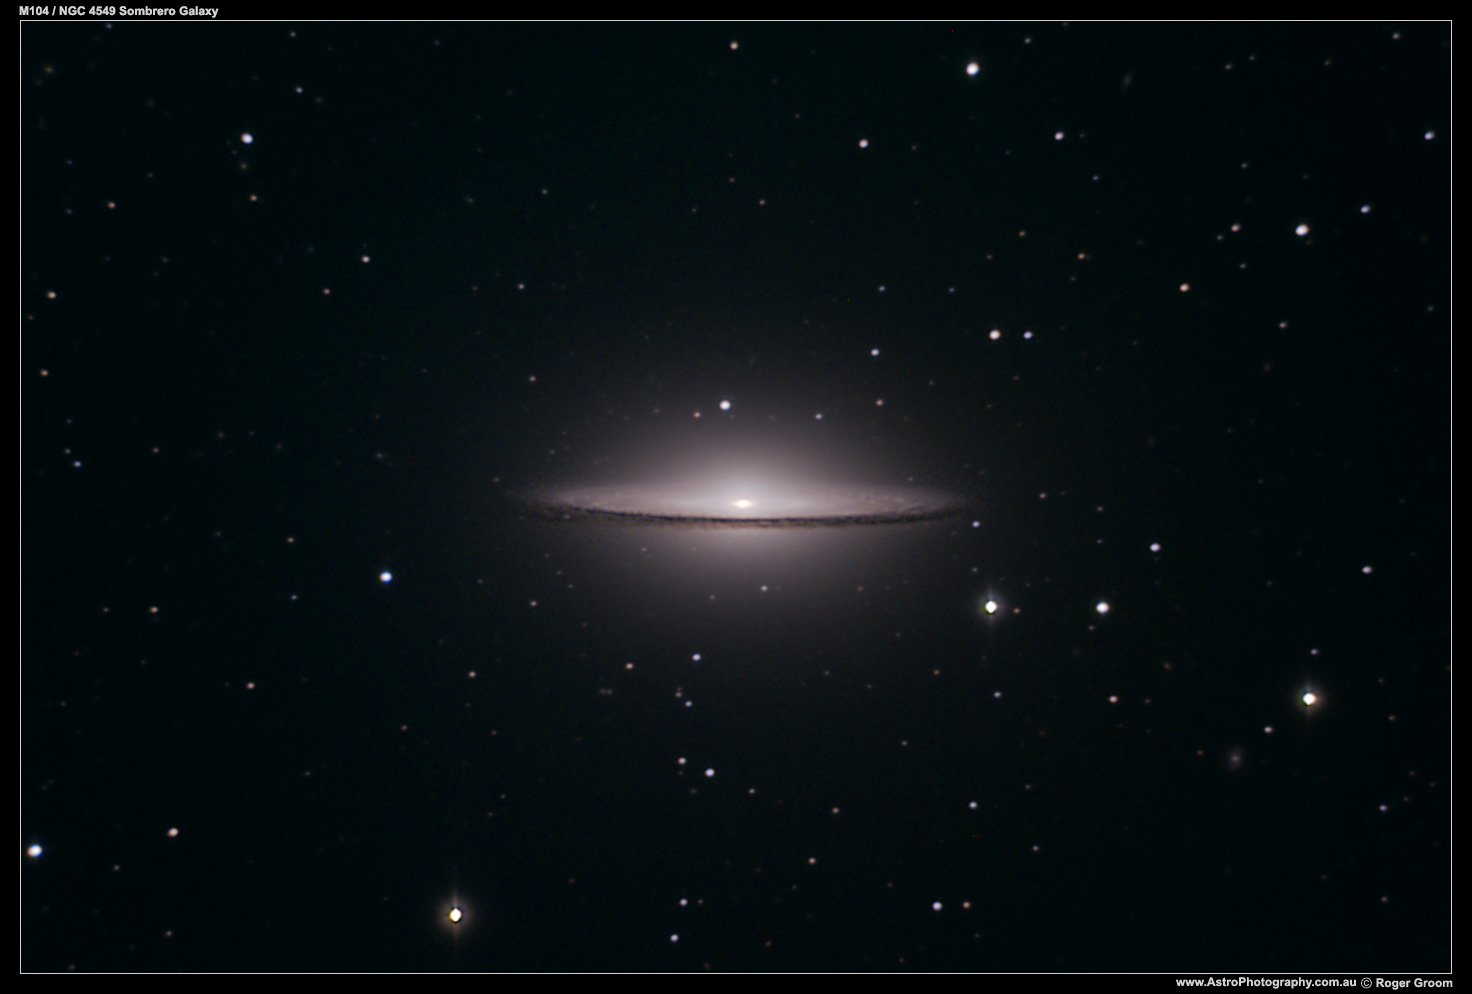 NGC 4549 / Messier 104 (Sombrero Galaxy)